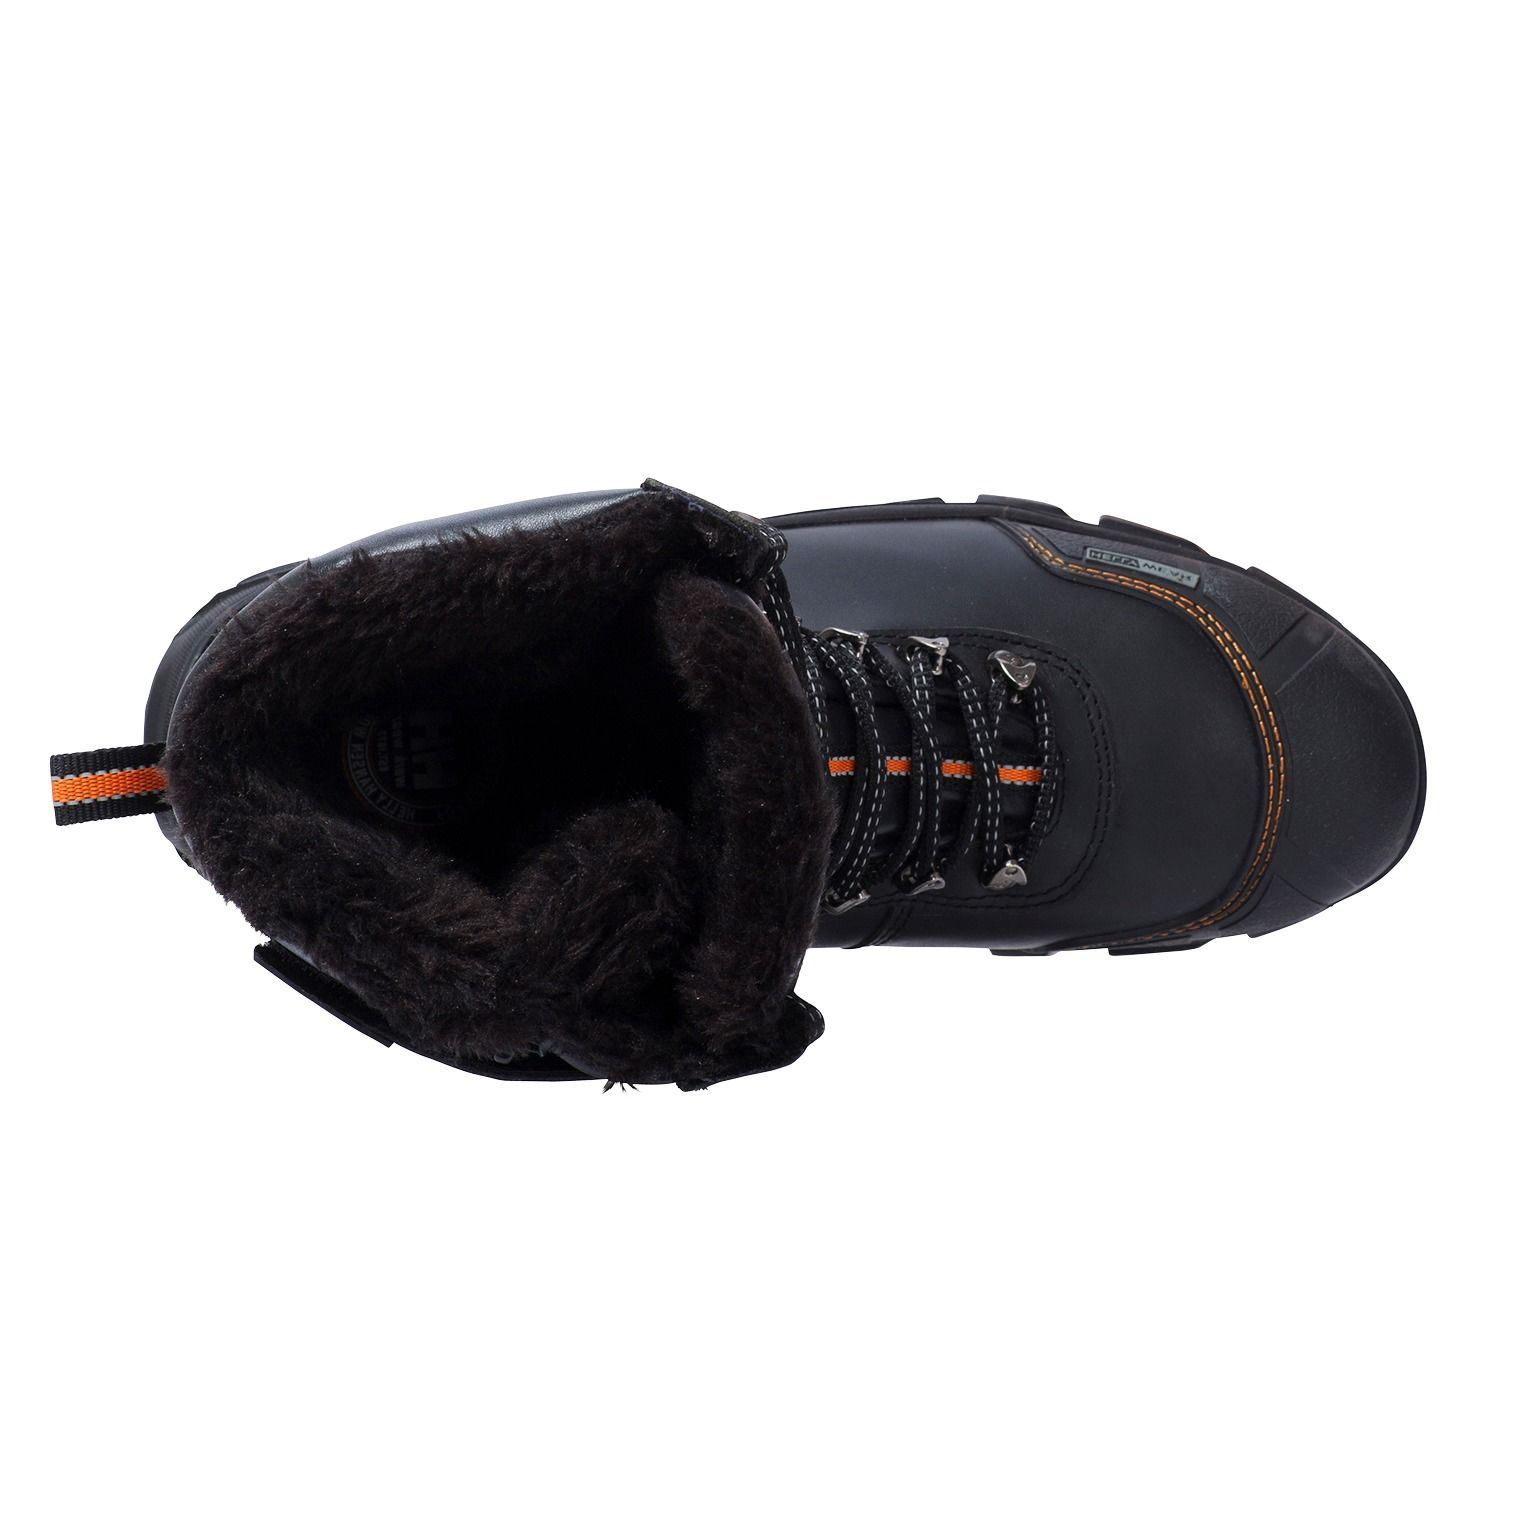 4361212e13343 HELLY HANSEN CHELSEA WINTER INSULATED SAFETY STEEL TOE CAP BOOT ...